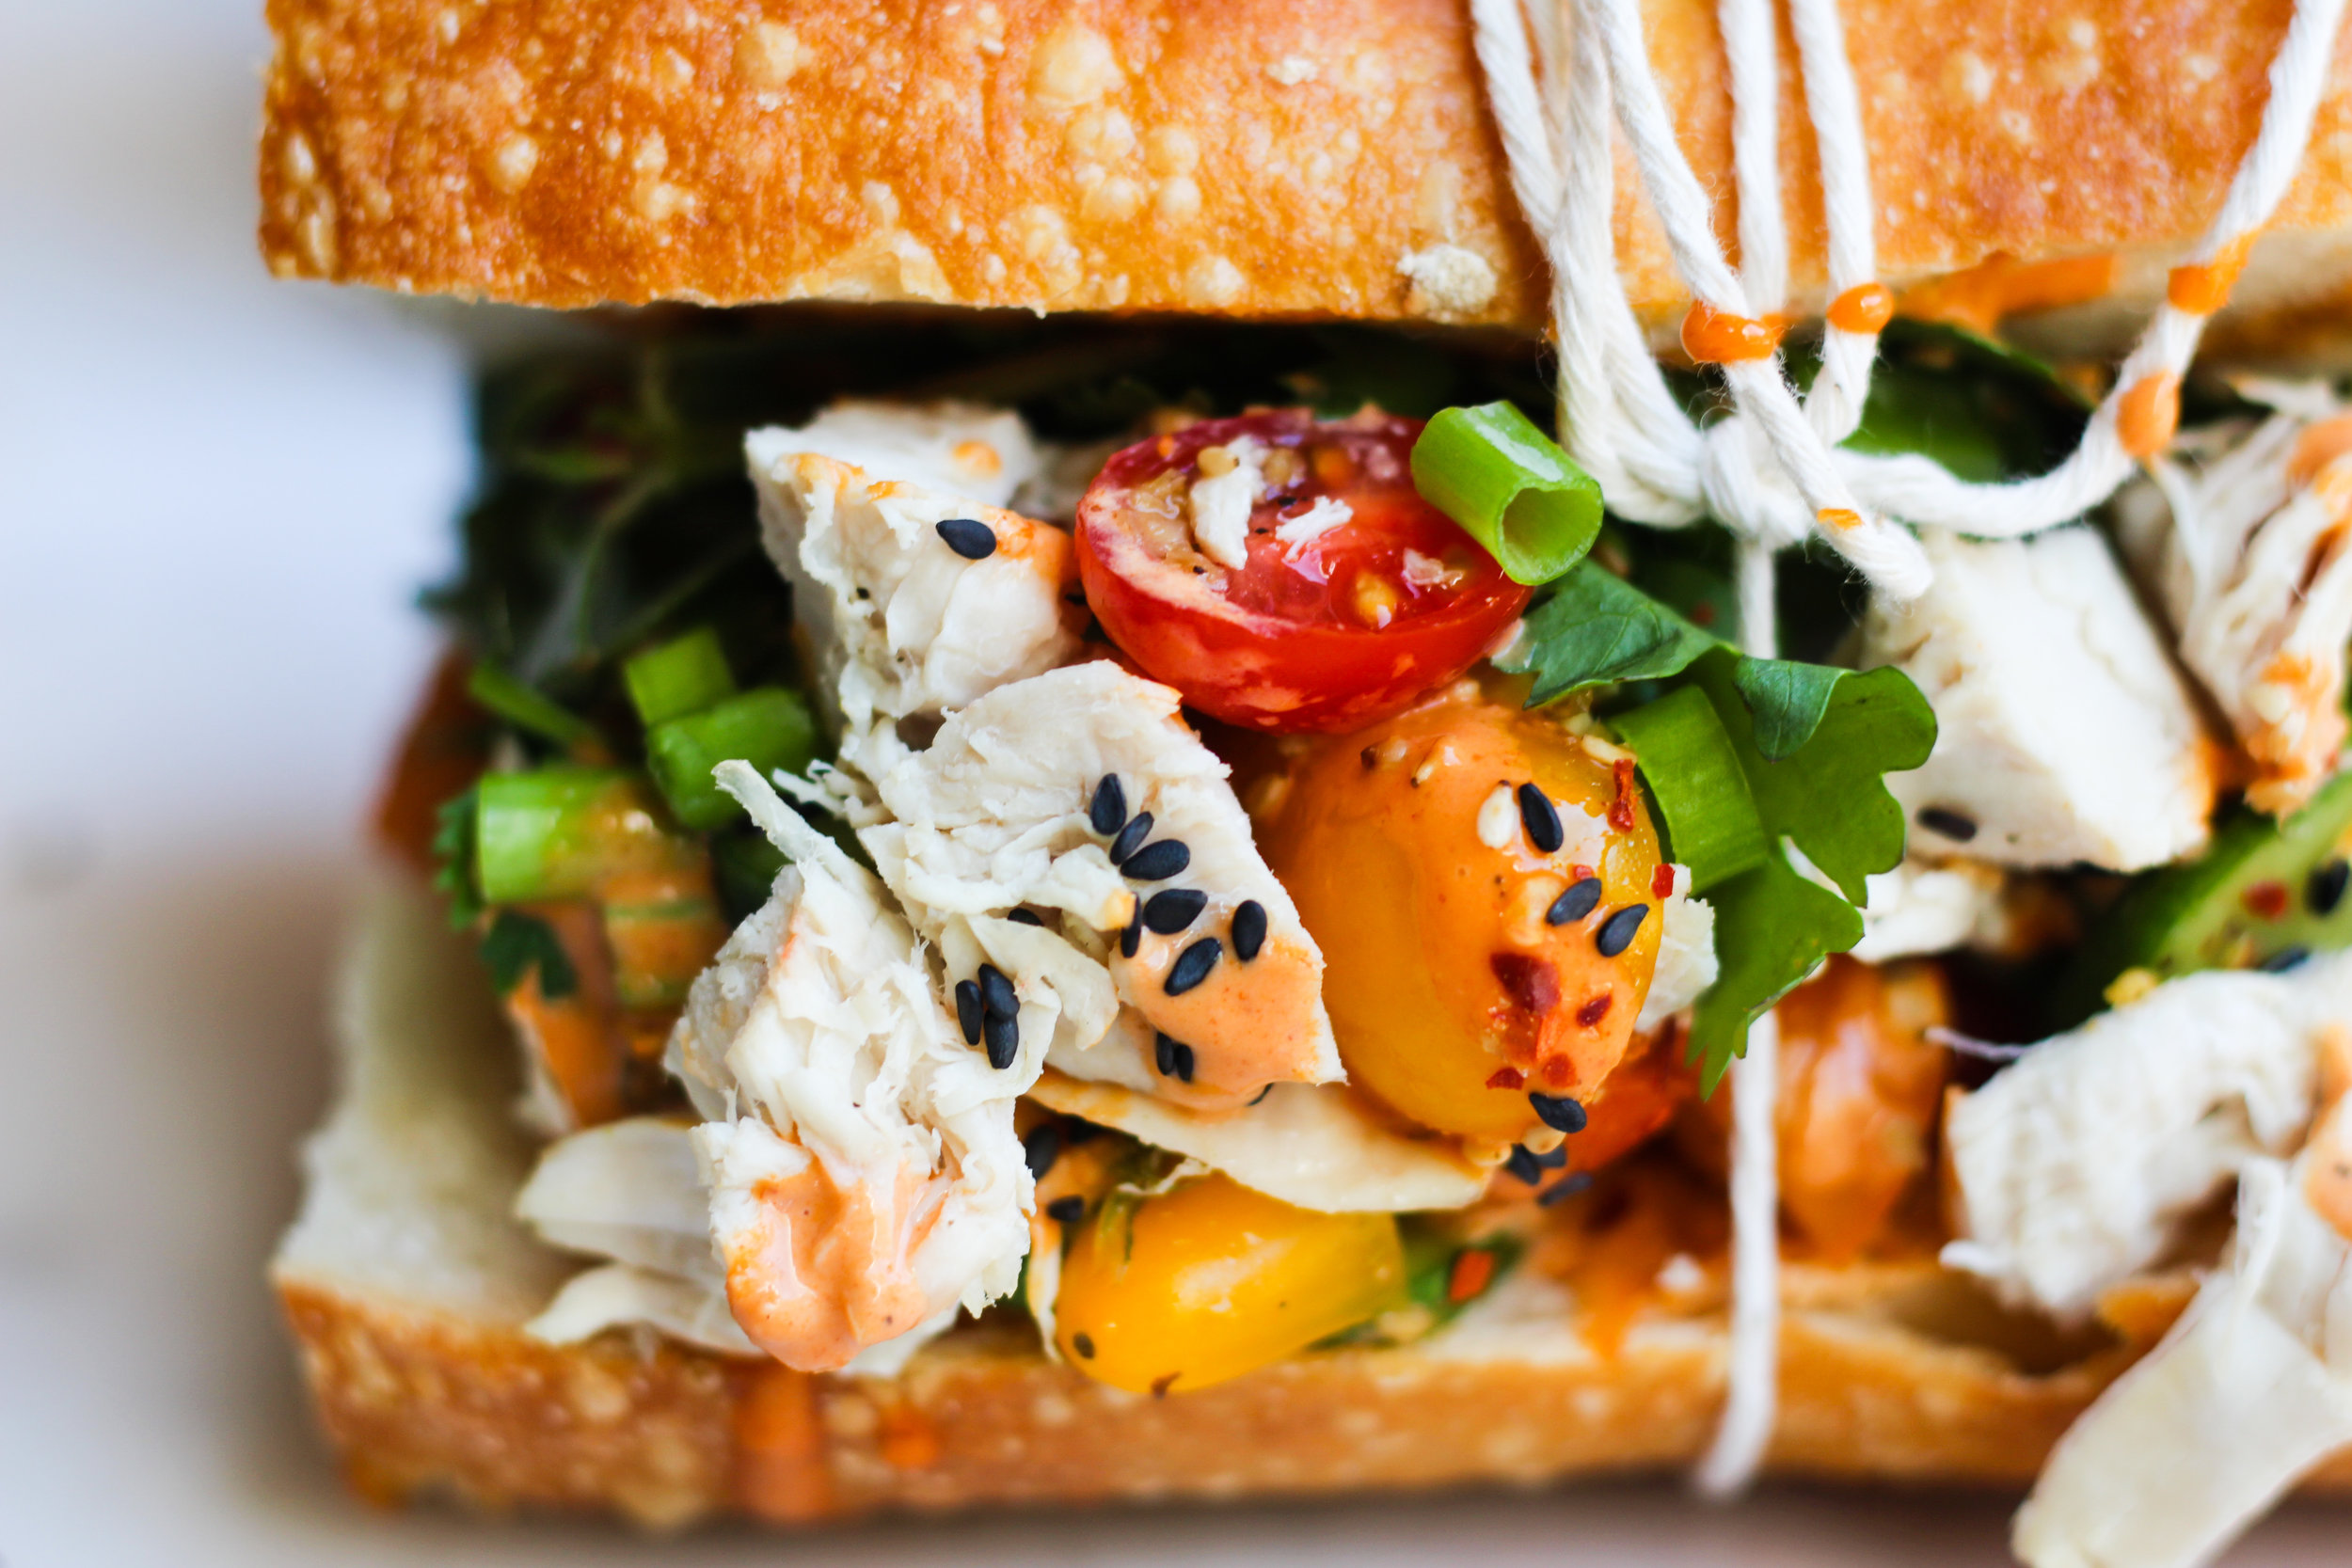 Hainan Chicken Sandwich with Gochujang Spicy Mayo